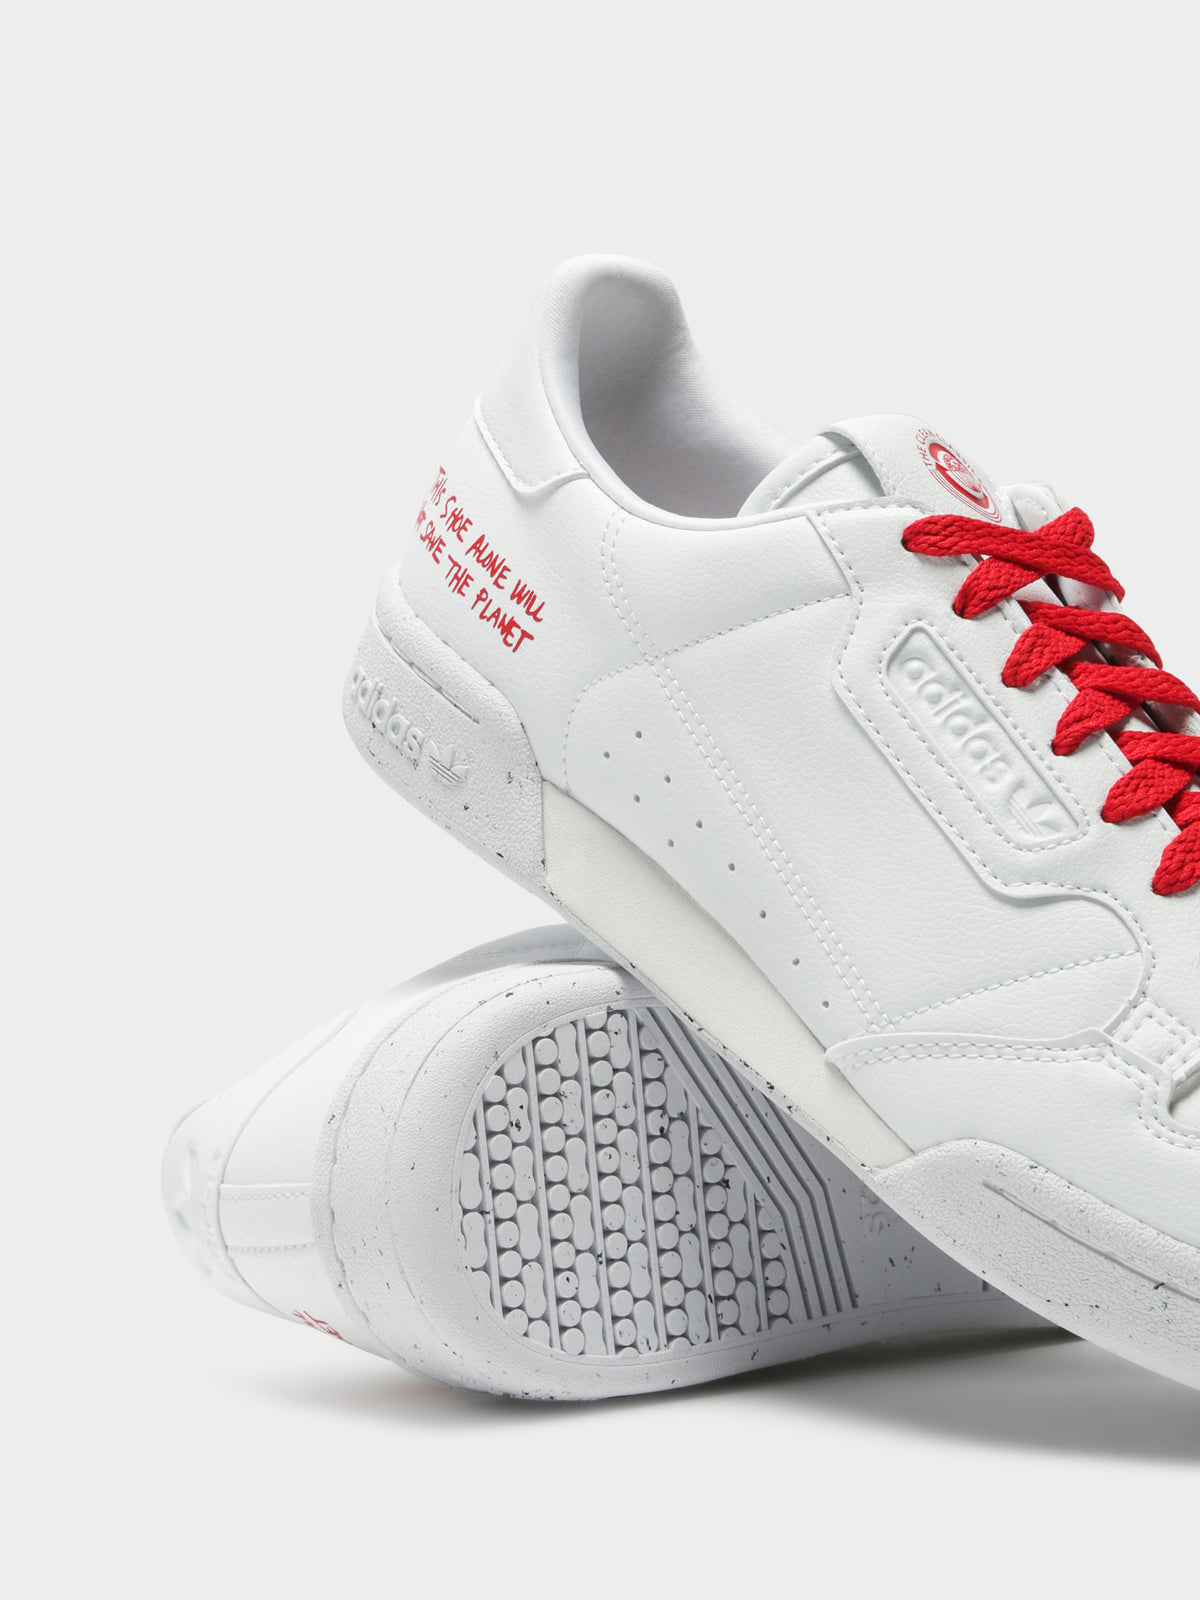 Unisex Continental 80 Sneakers in White & Scarlet